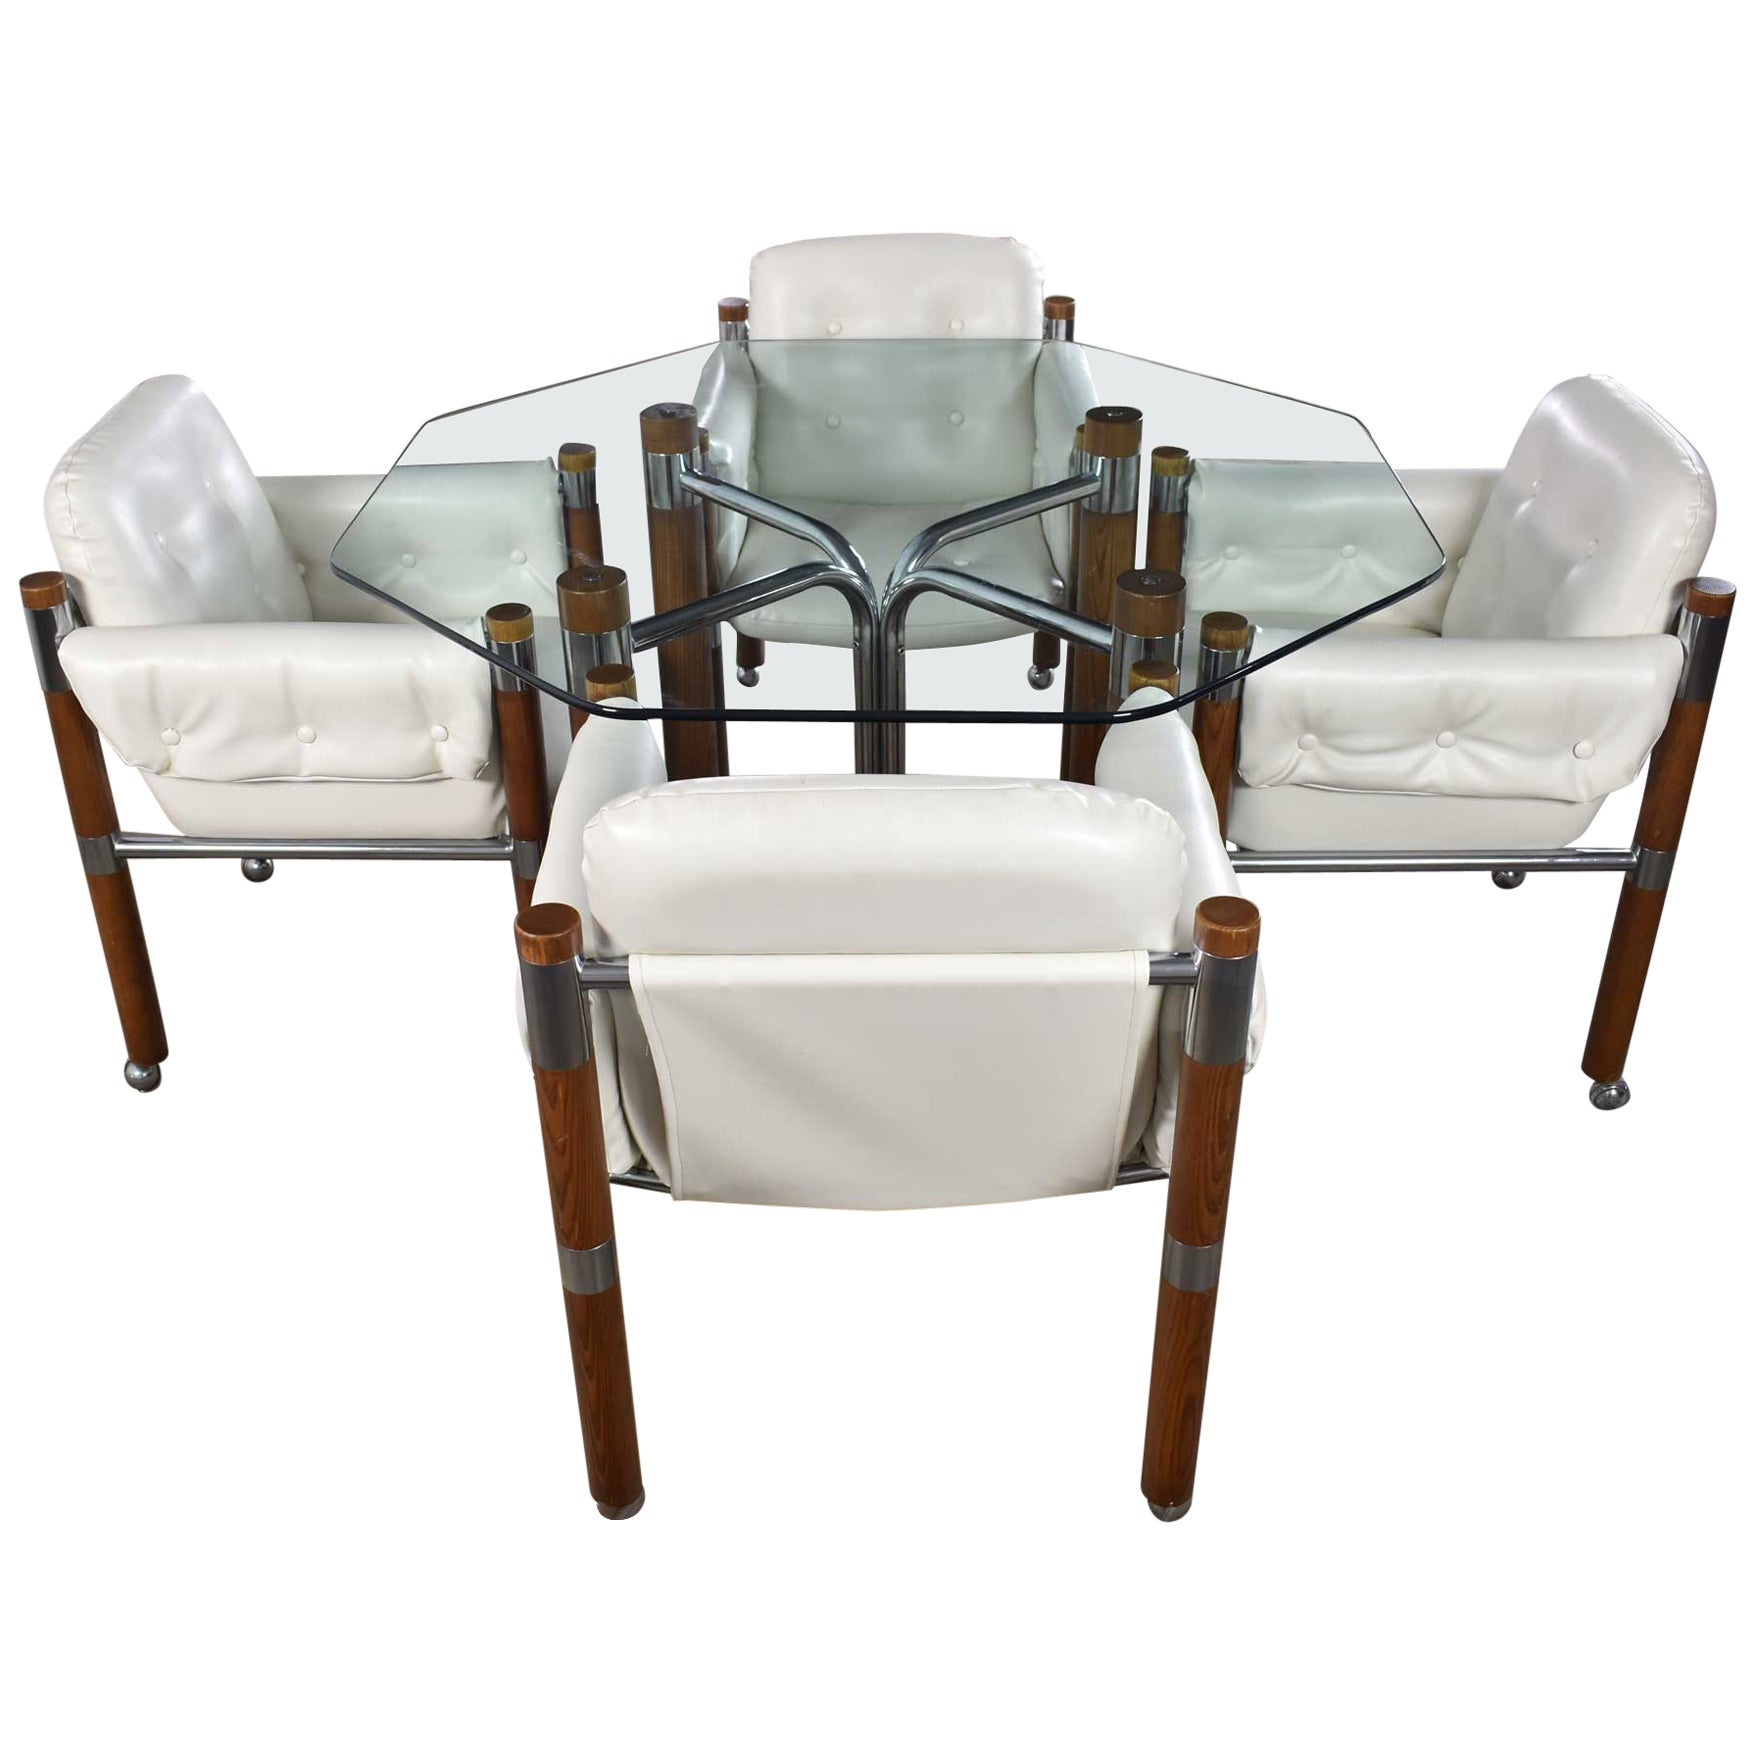 Modern Game Table or Dining Table Glass Chrome Oak with Four White Rolling Chair